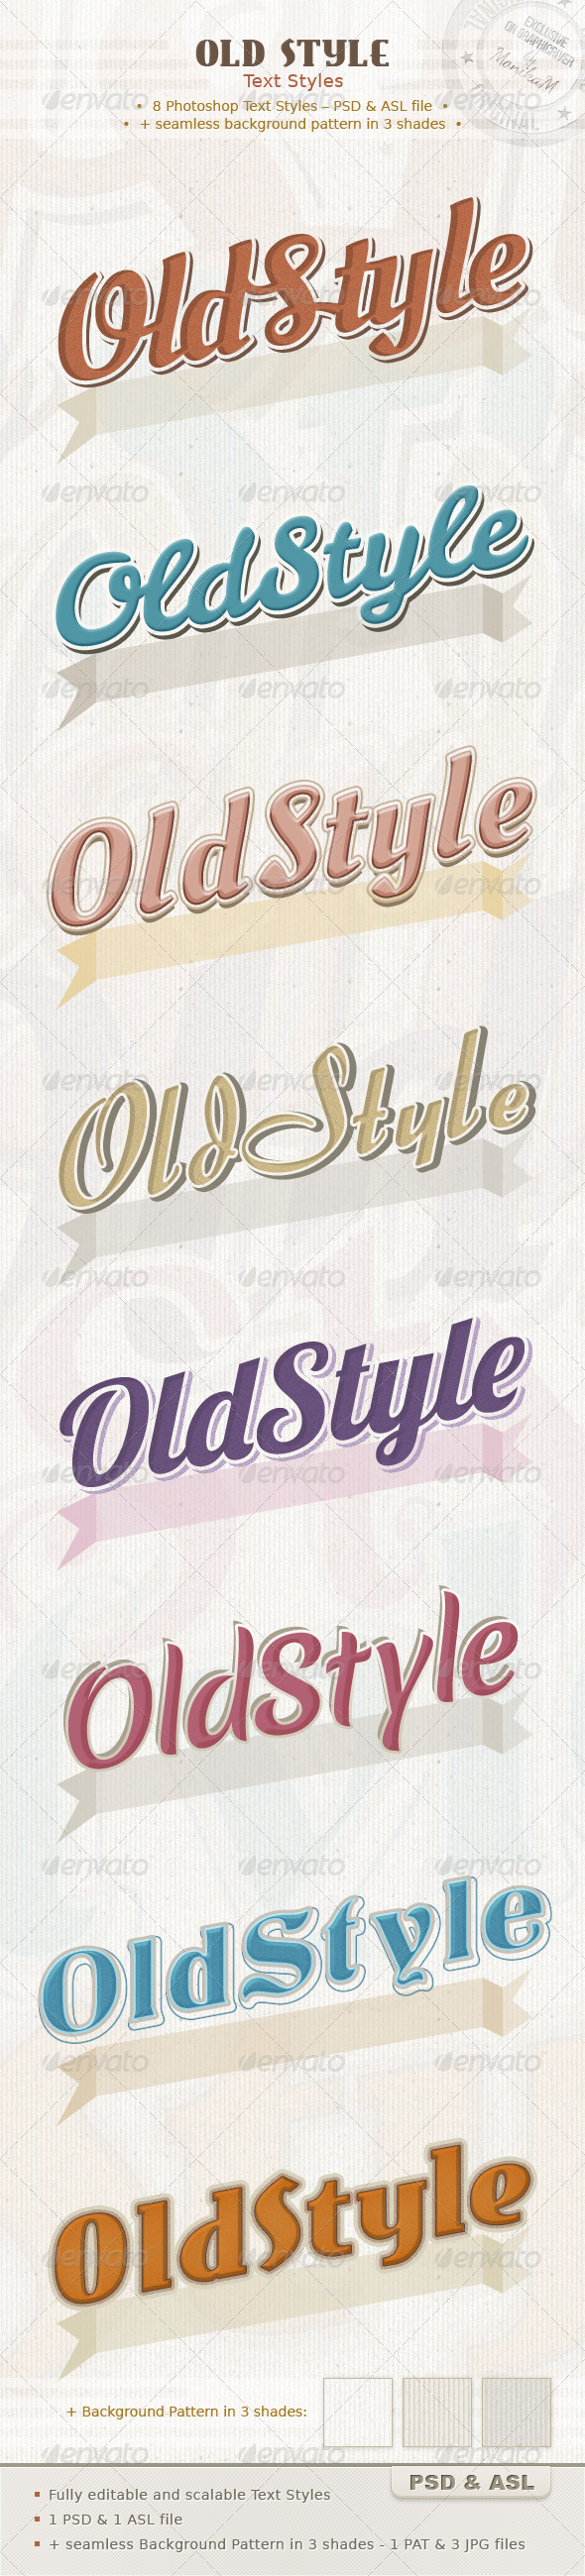 GraphicRiver Old Style Text Styles 4826673